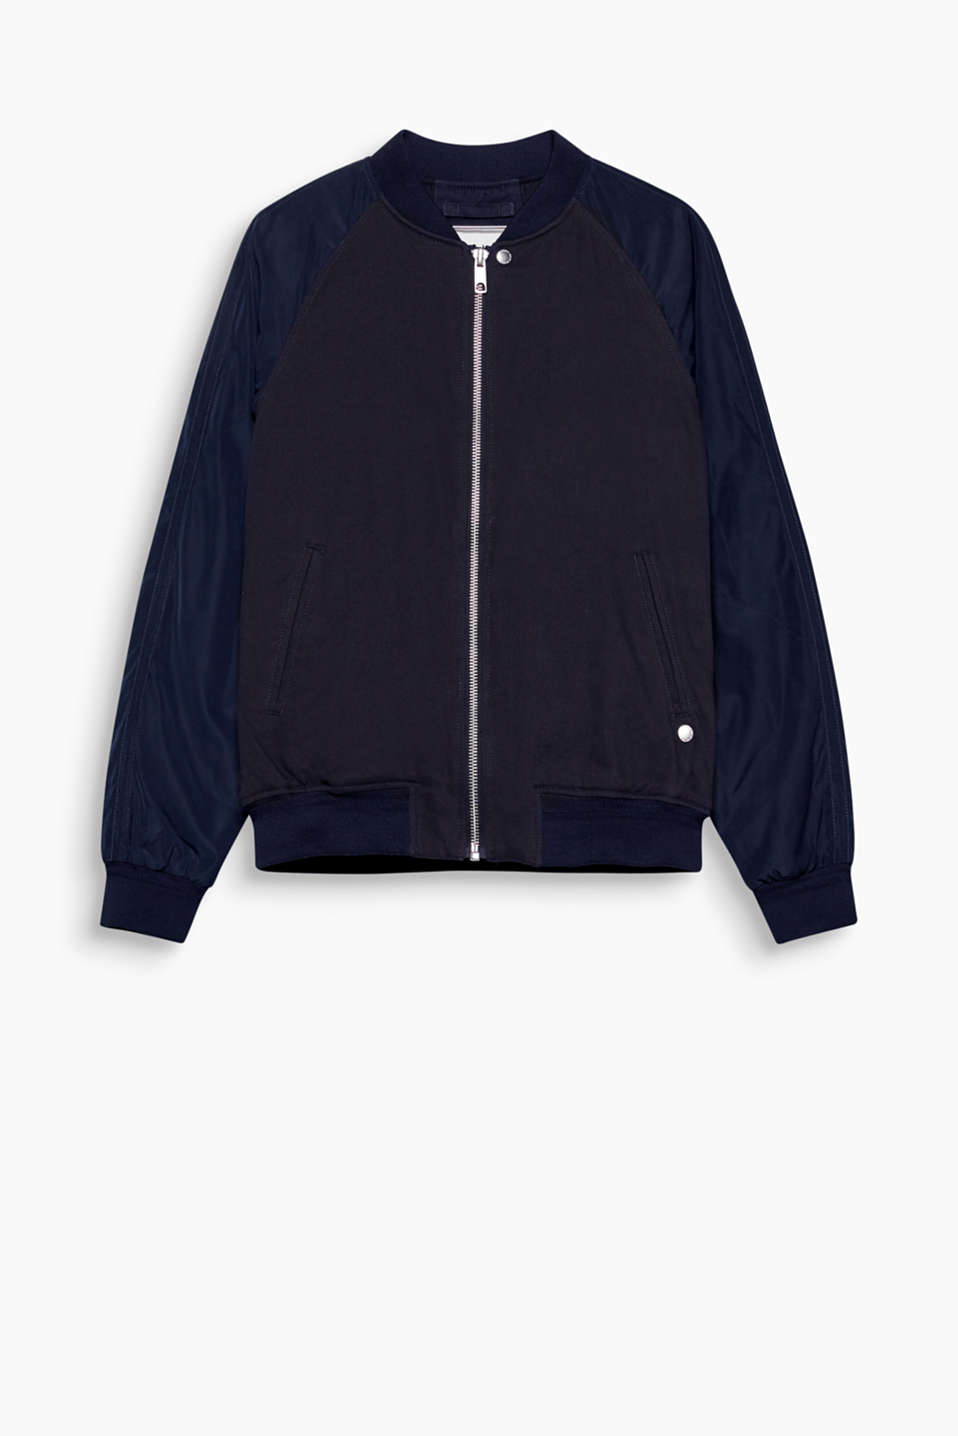 For indoors or outdoors: this bomber jacket boasts a sporty, simple design.